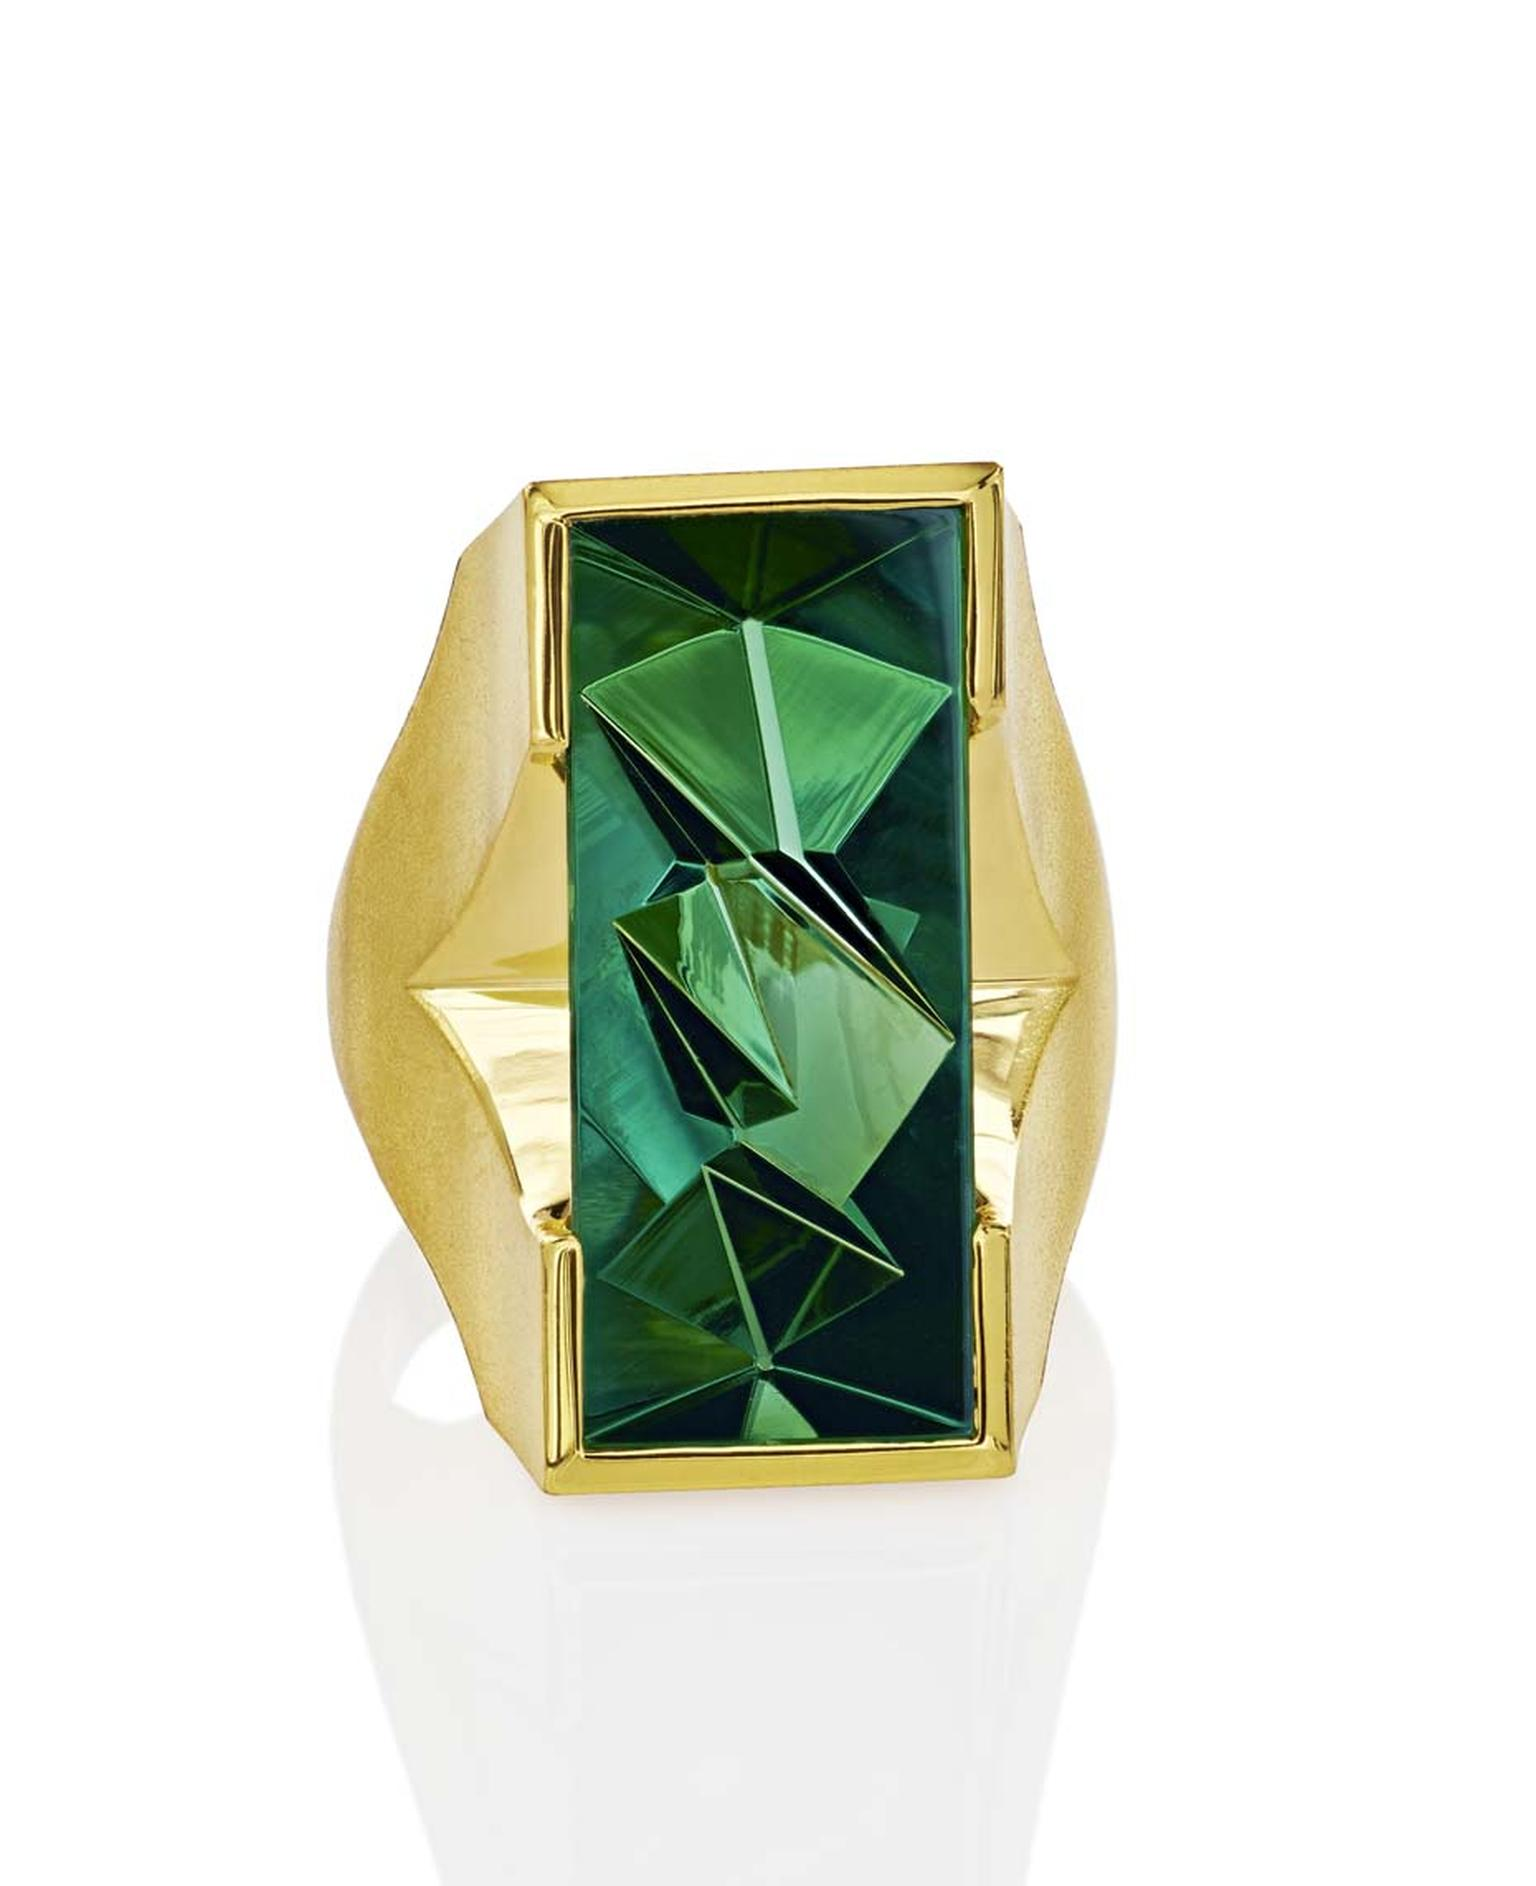 Atelier Munsteiner, who has worked with Aaron Faber since the start of his career, is exhibiting this yellow gold ring with a 10.62ct tourmaline at the New York gallery.